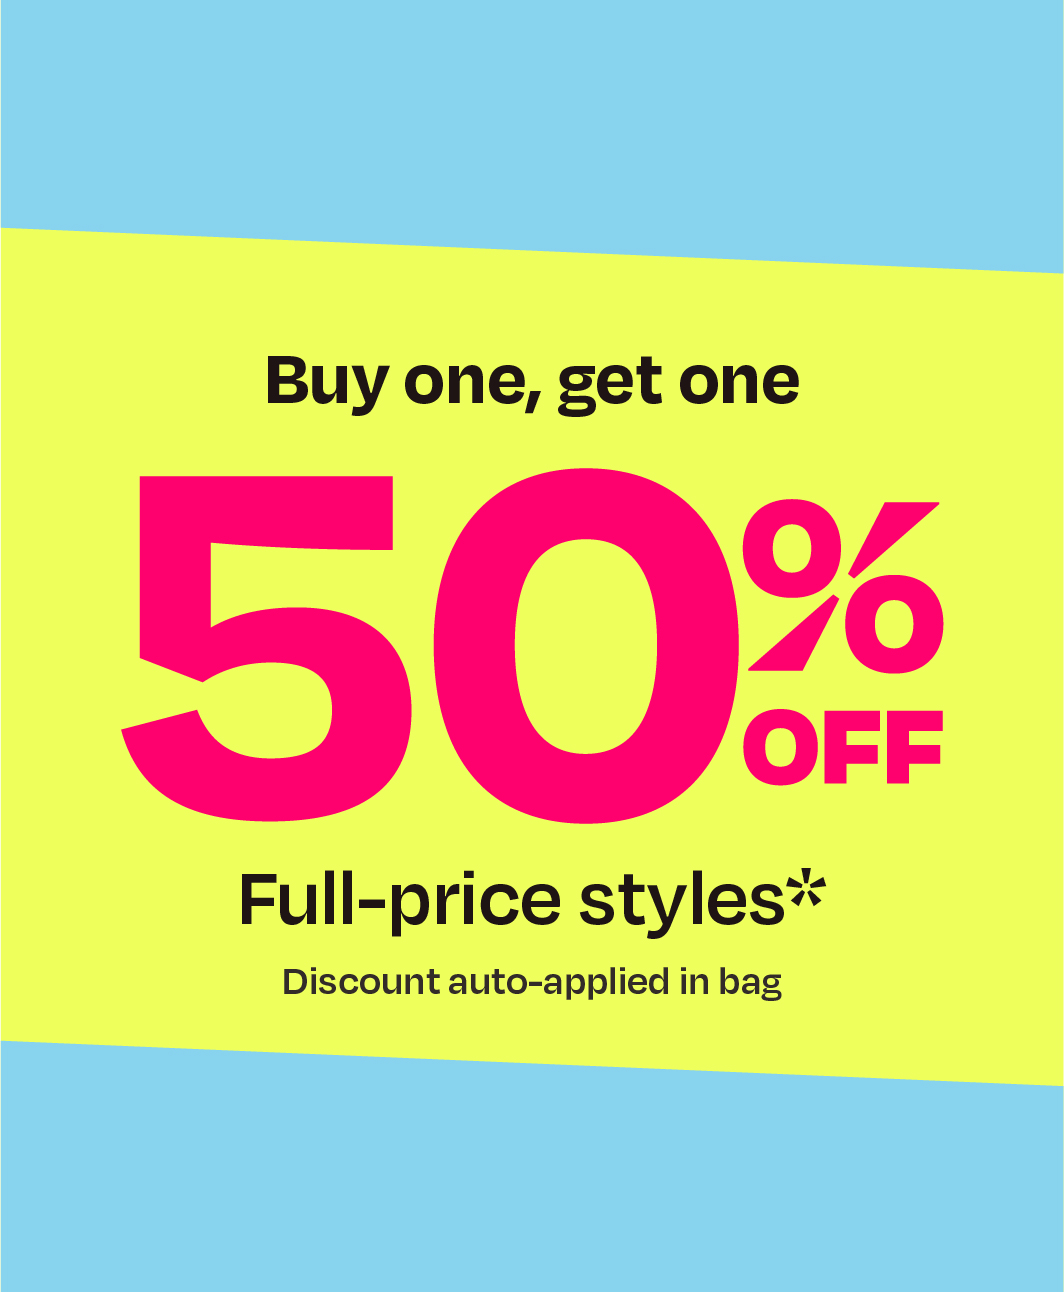 Buy one, get one 50% off full-price styles* discount auto applied in bag